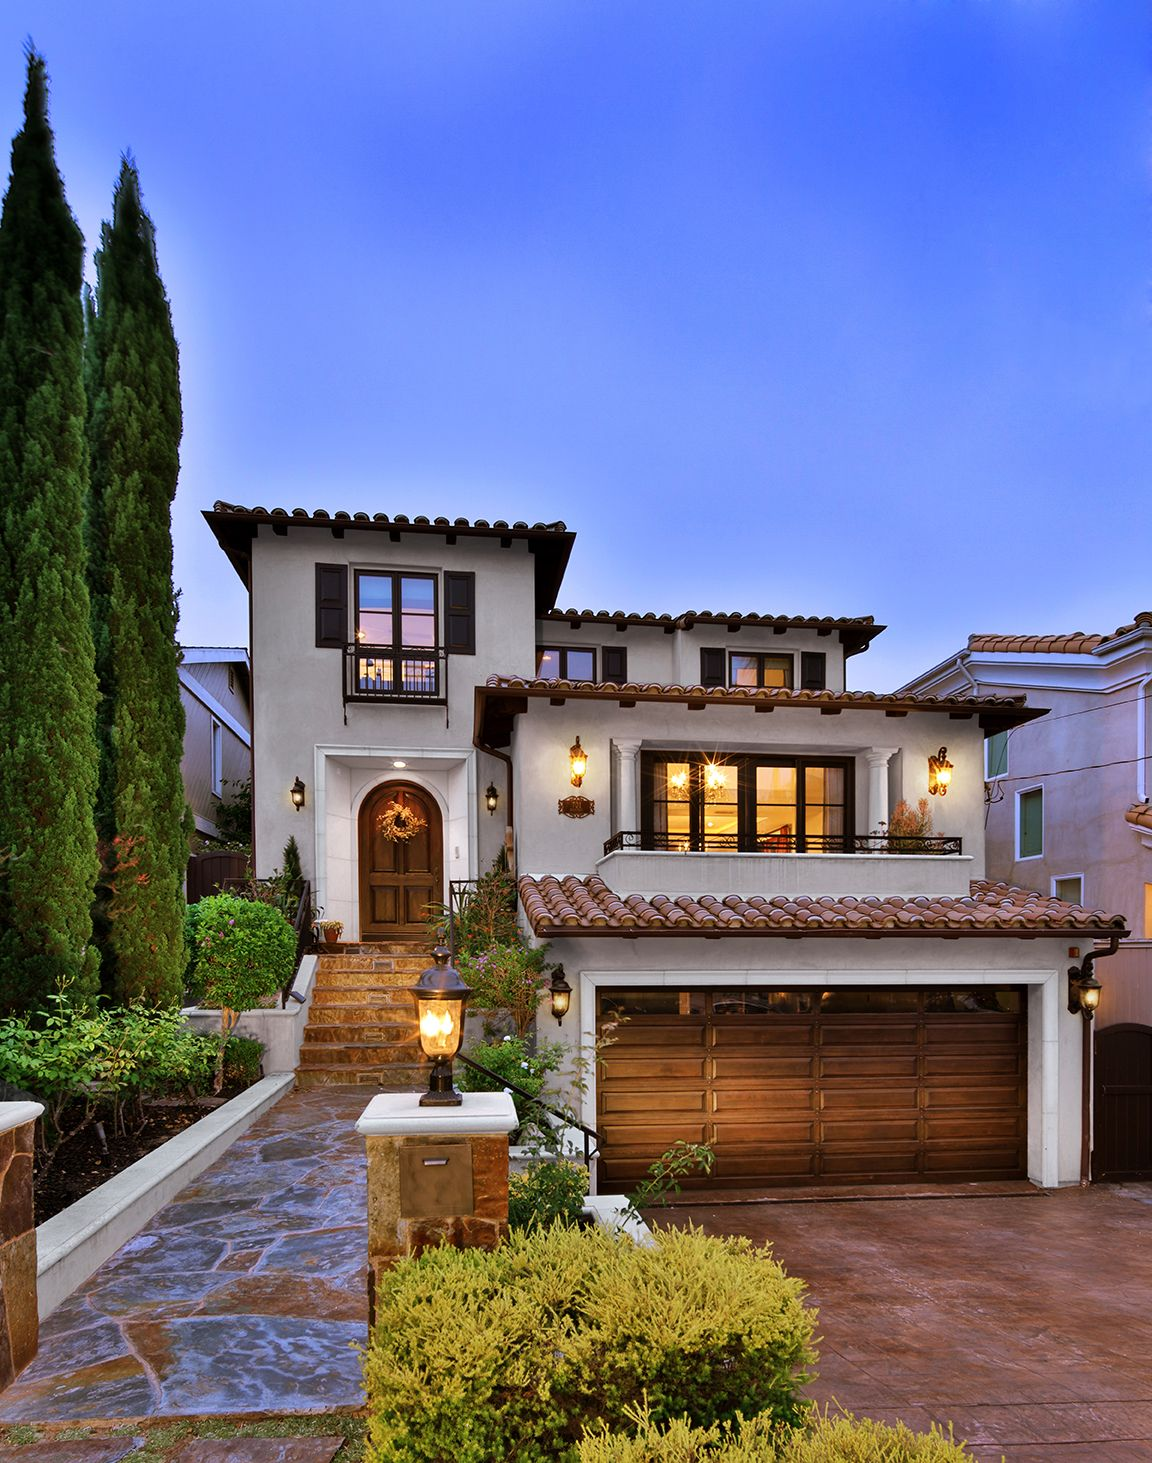 Luxury Spanish Villa Style Home Exterior Digs Cover Homes In 2019